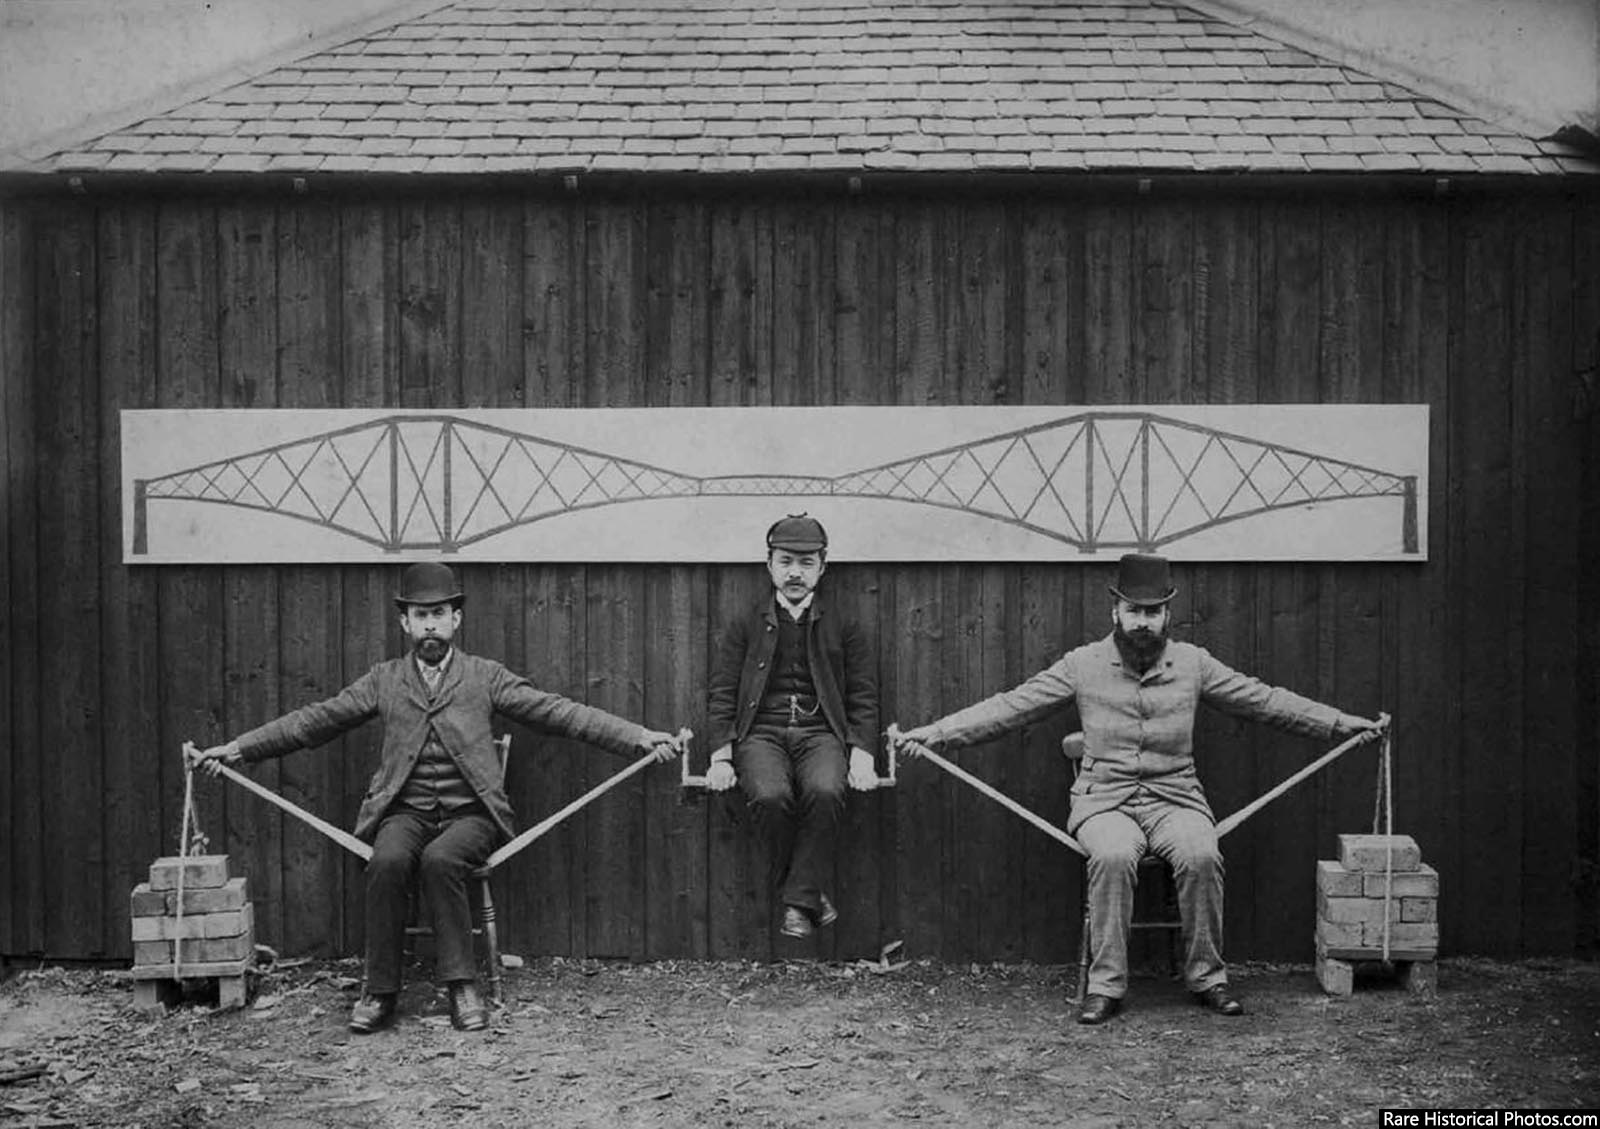 Project engineers demonstrating the cantilever principles of the Forth Bridge in Scotland, 1887.